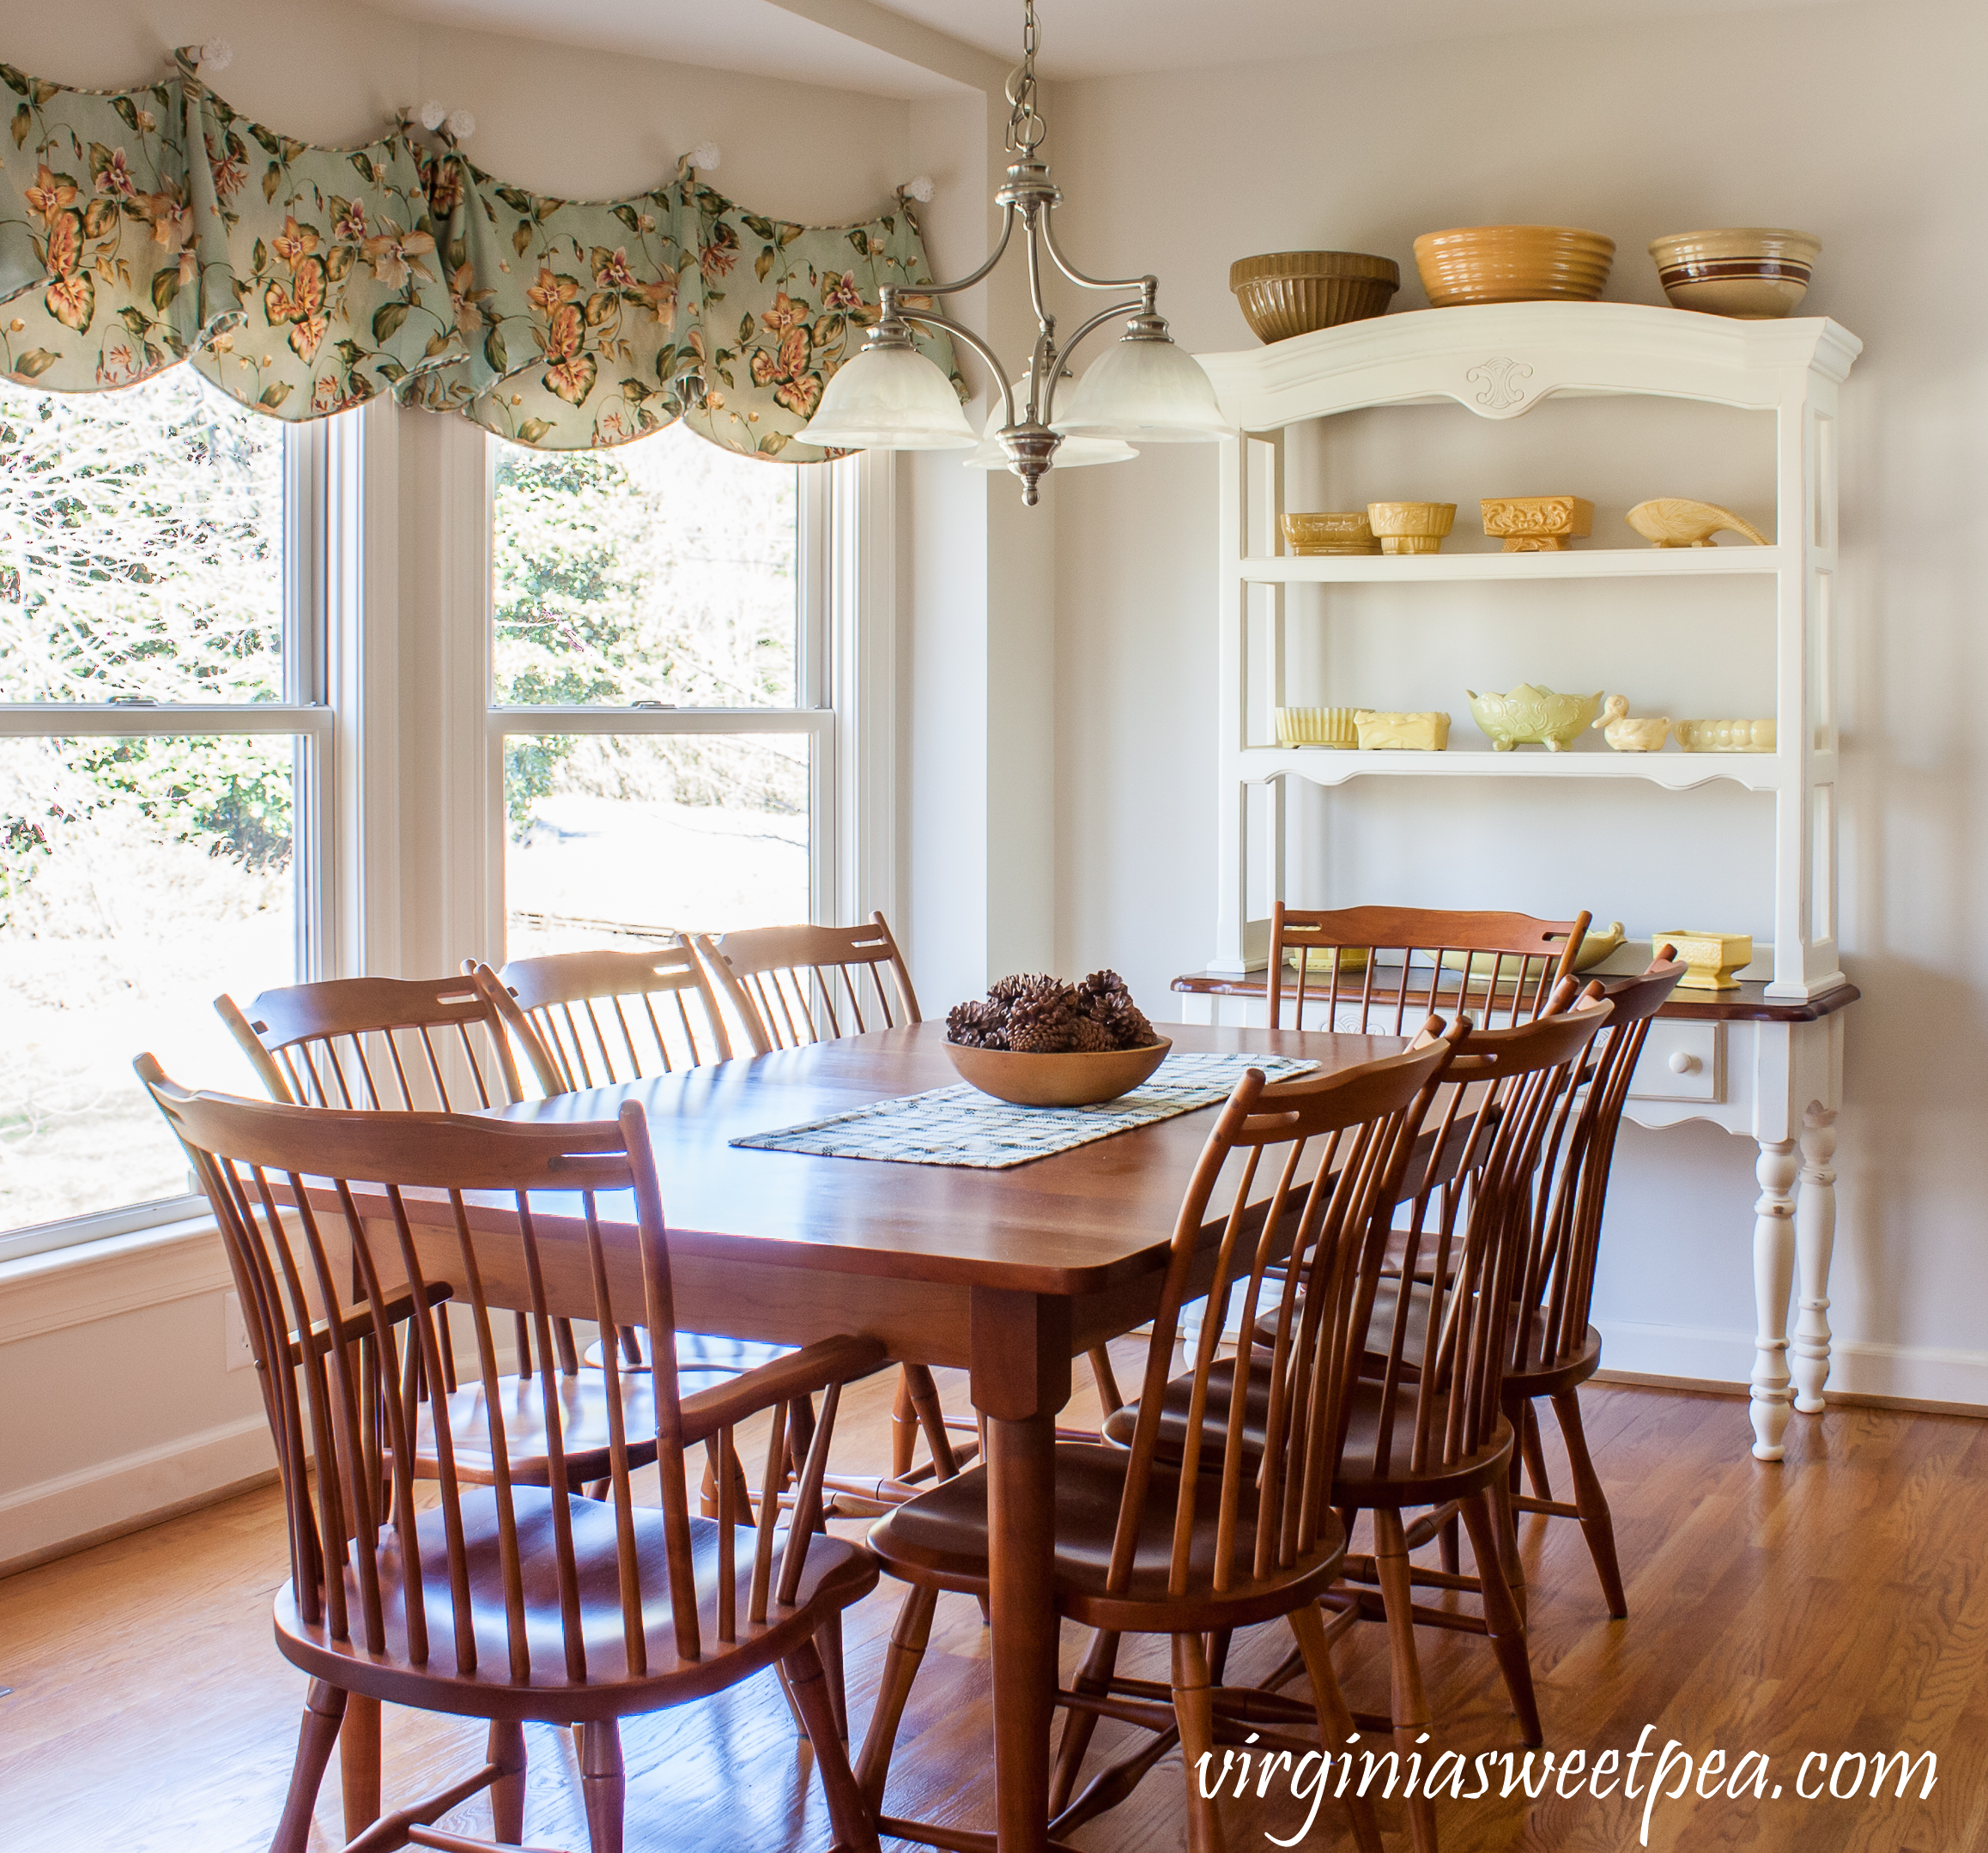 Farmhouse Hutch With Vintage Yellow Pottery | Virginia Sweet Pea